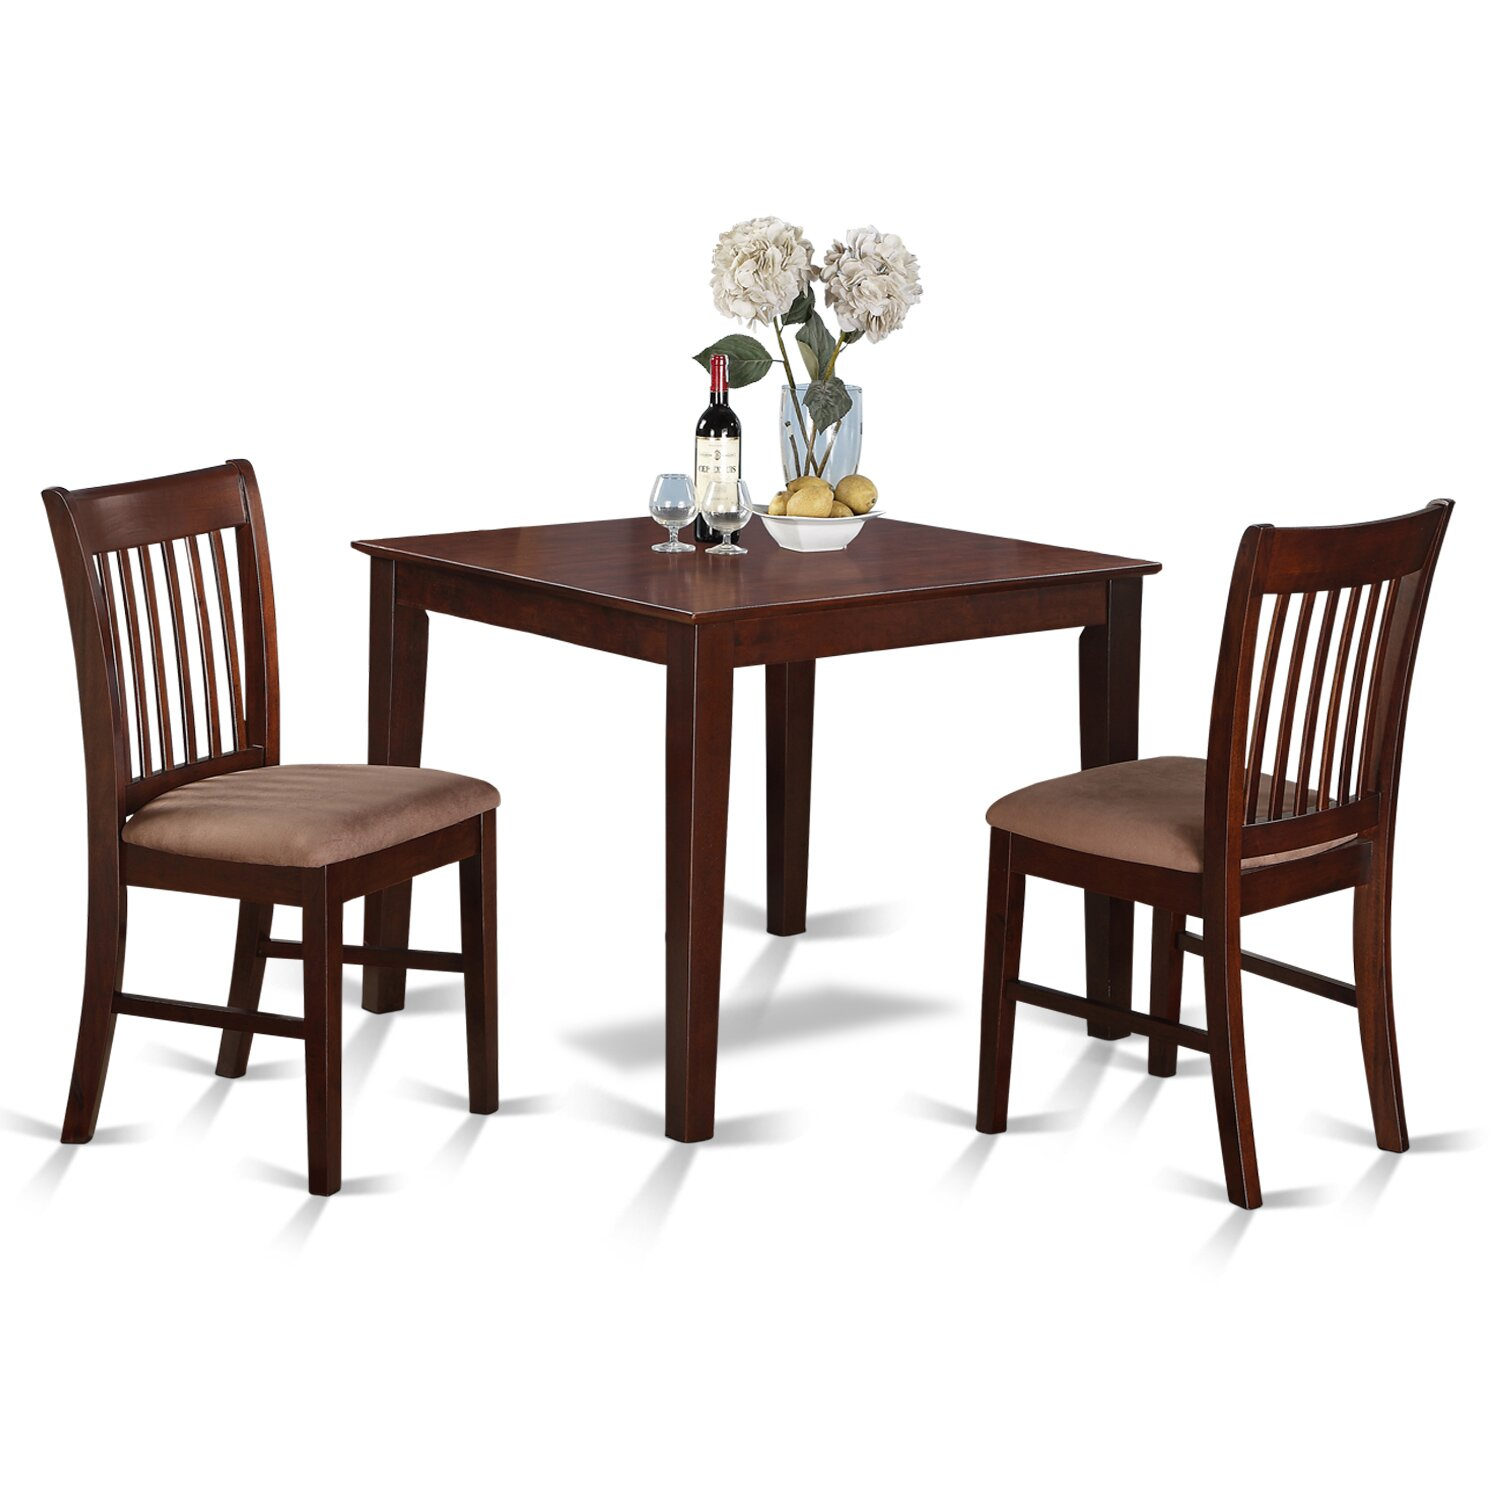 east west oxford 3 piece dining set reviews wayfair. Black Bedroom Furniture Sets. Home Design Ideas